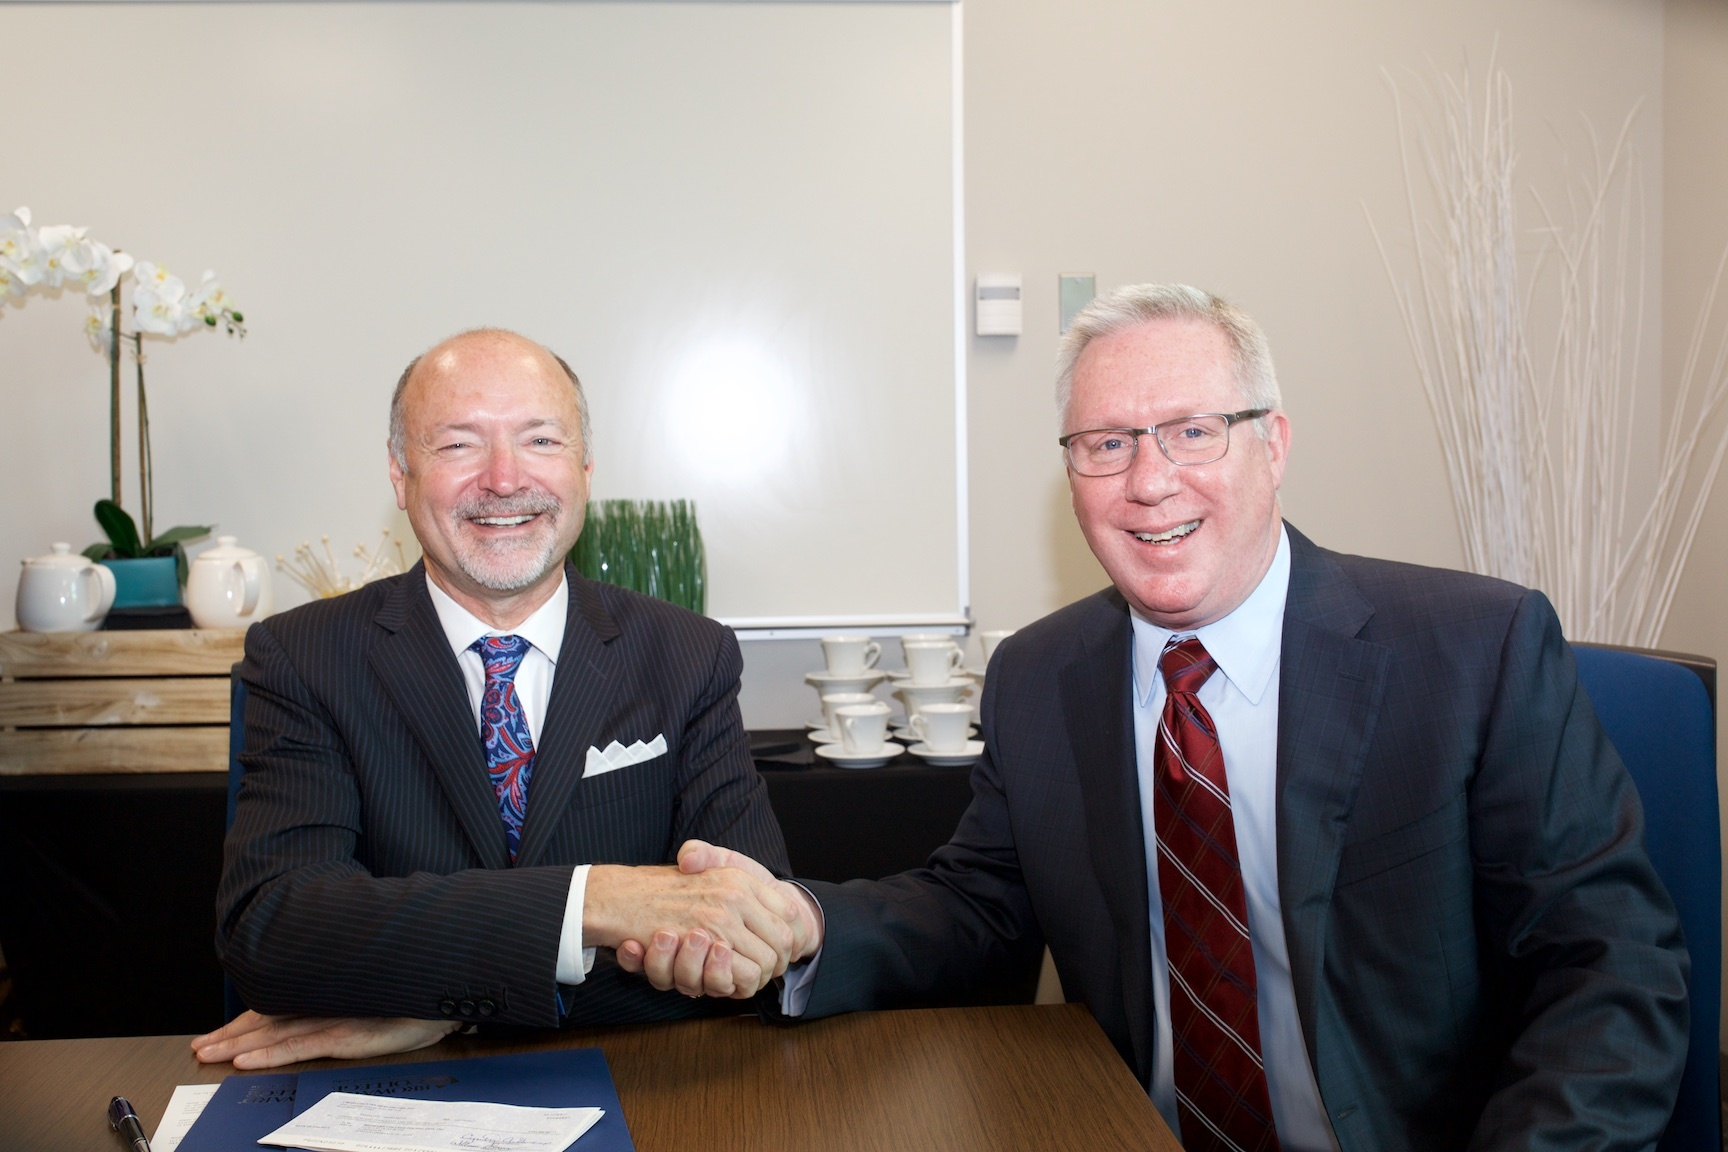 (Pictured left to right) J. David Armstrong Jr., President Broward College and Bill Grubbs, President and CEO of Cross Country Healthcare (Photo: Business Wire)